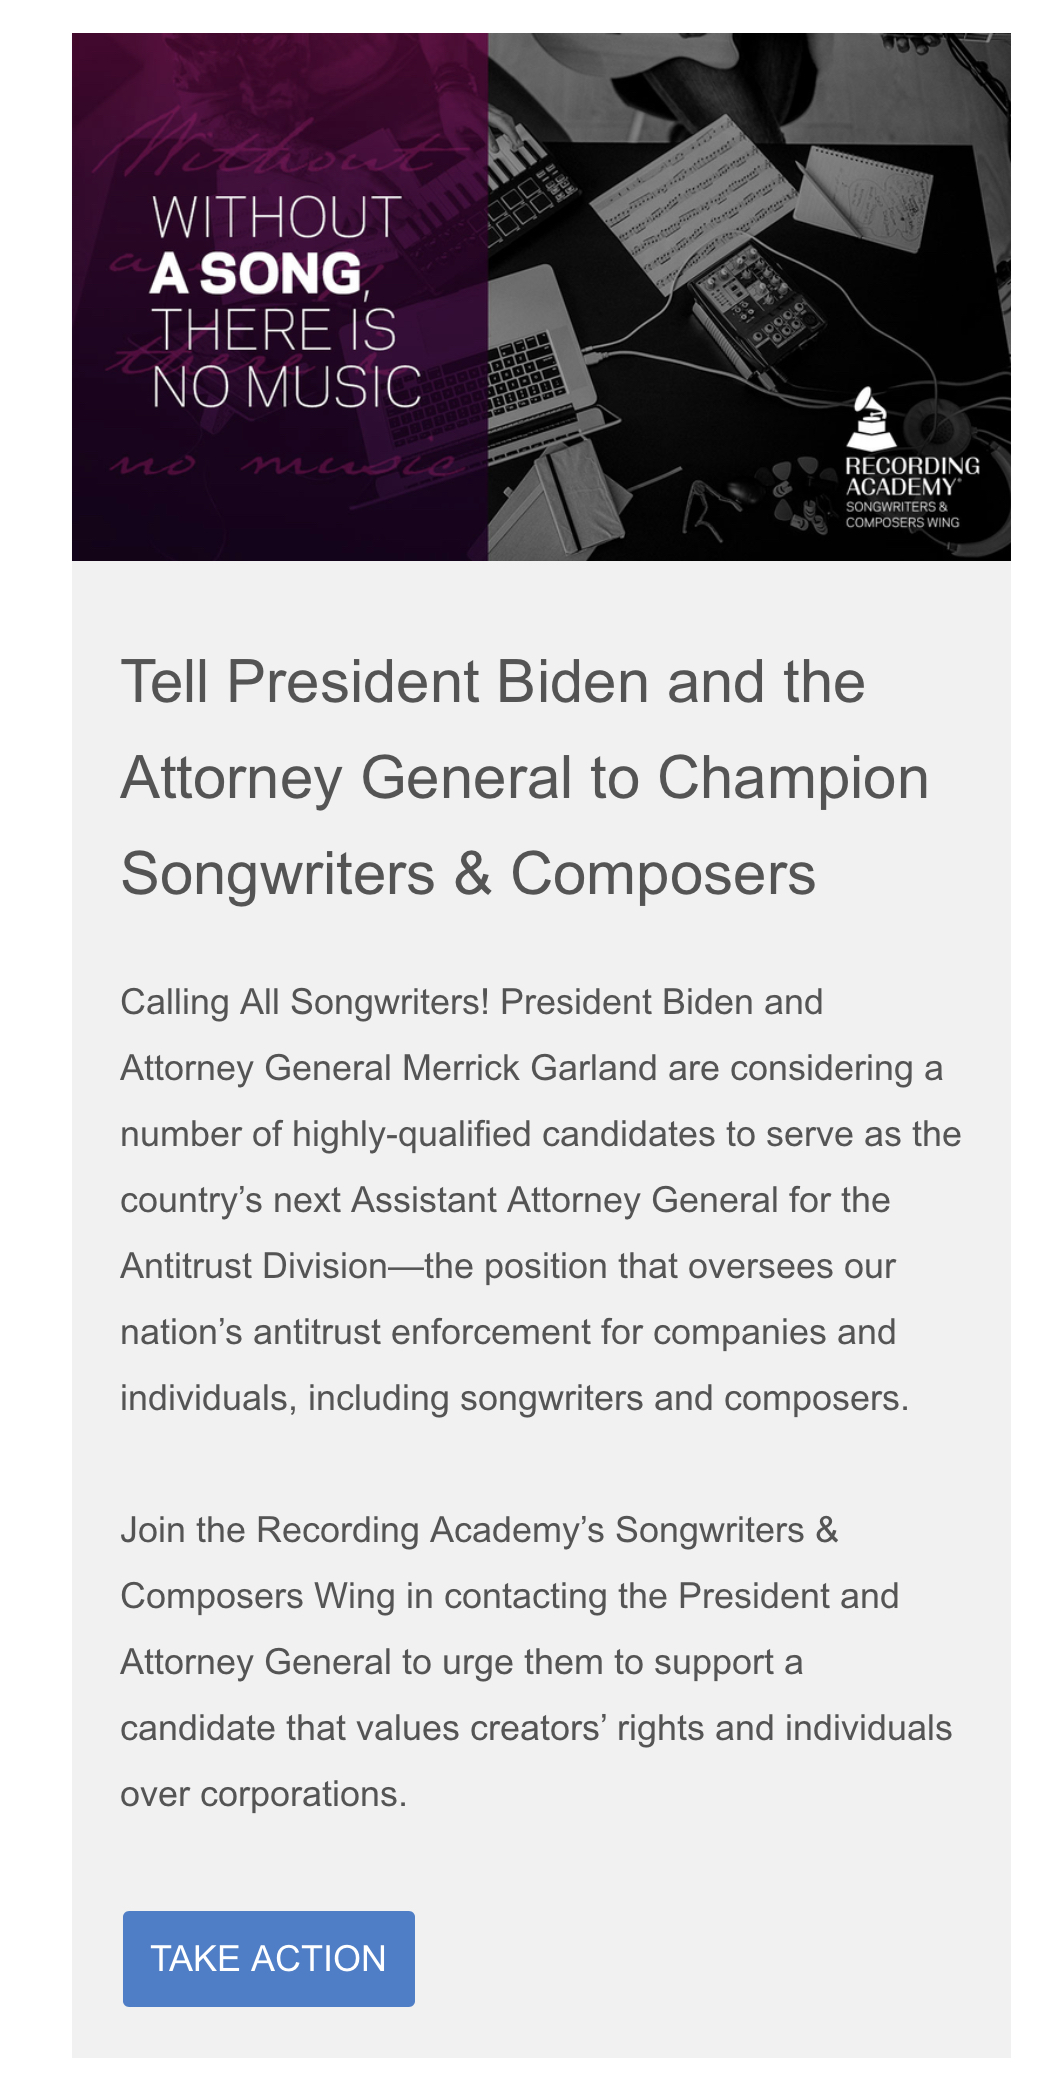 Take action Grammy advocacy